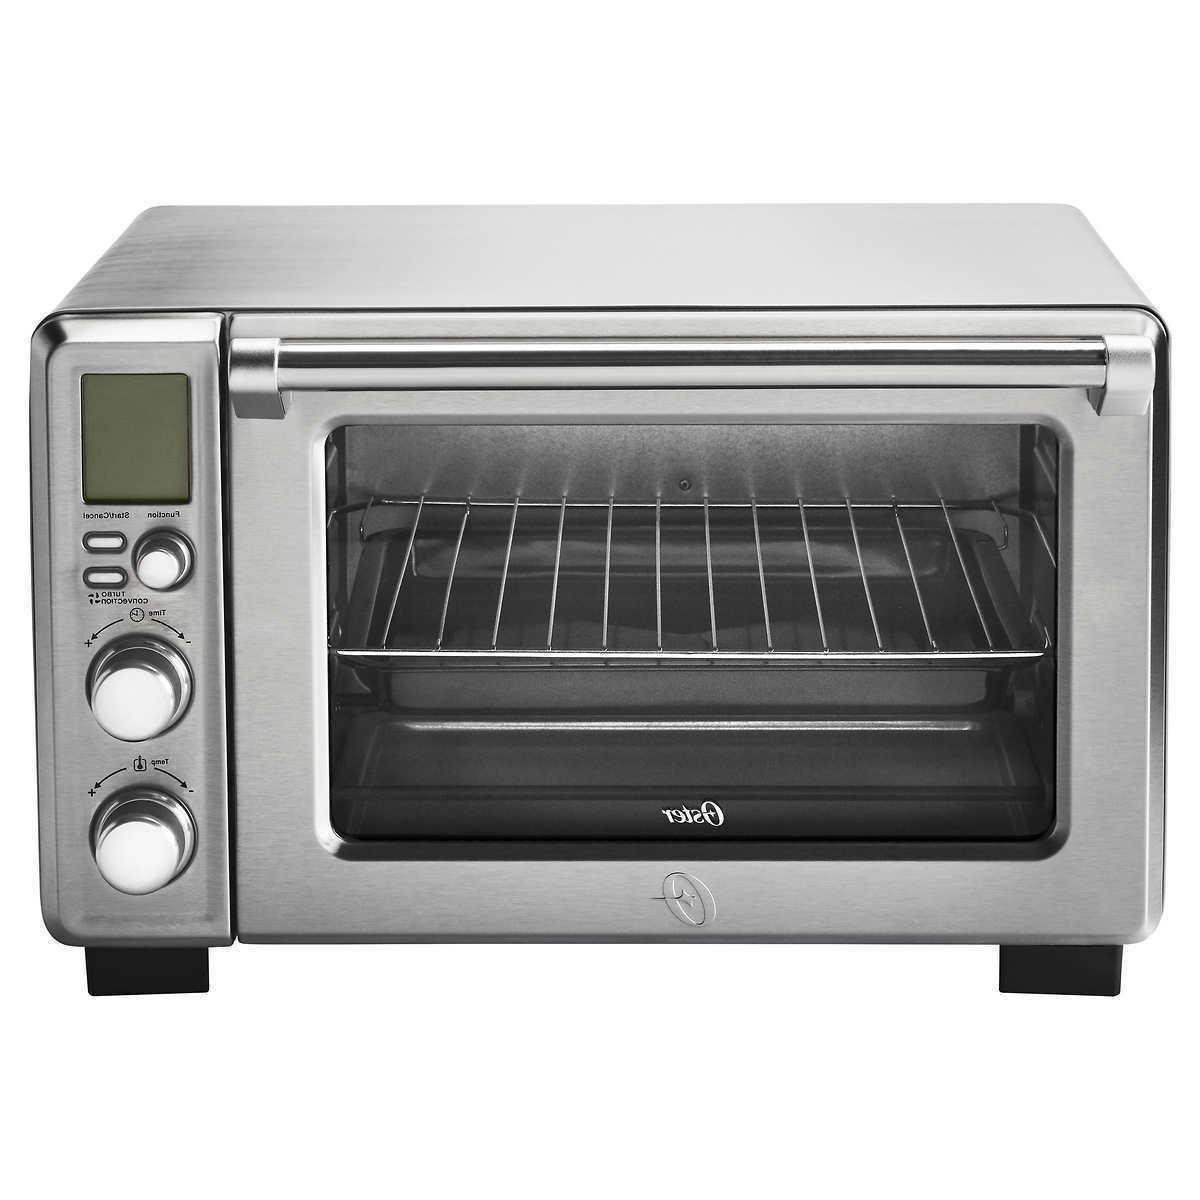 Oster Digital Stainless Steel Countertop 2104190 #1